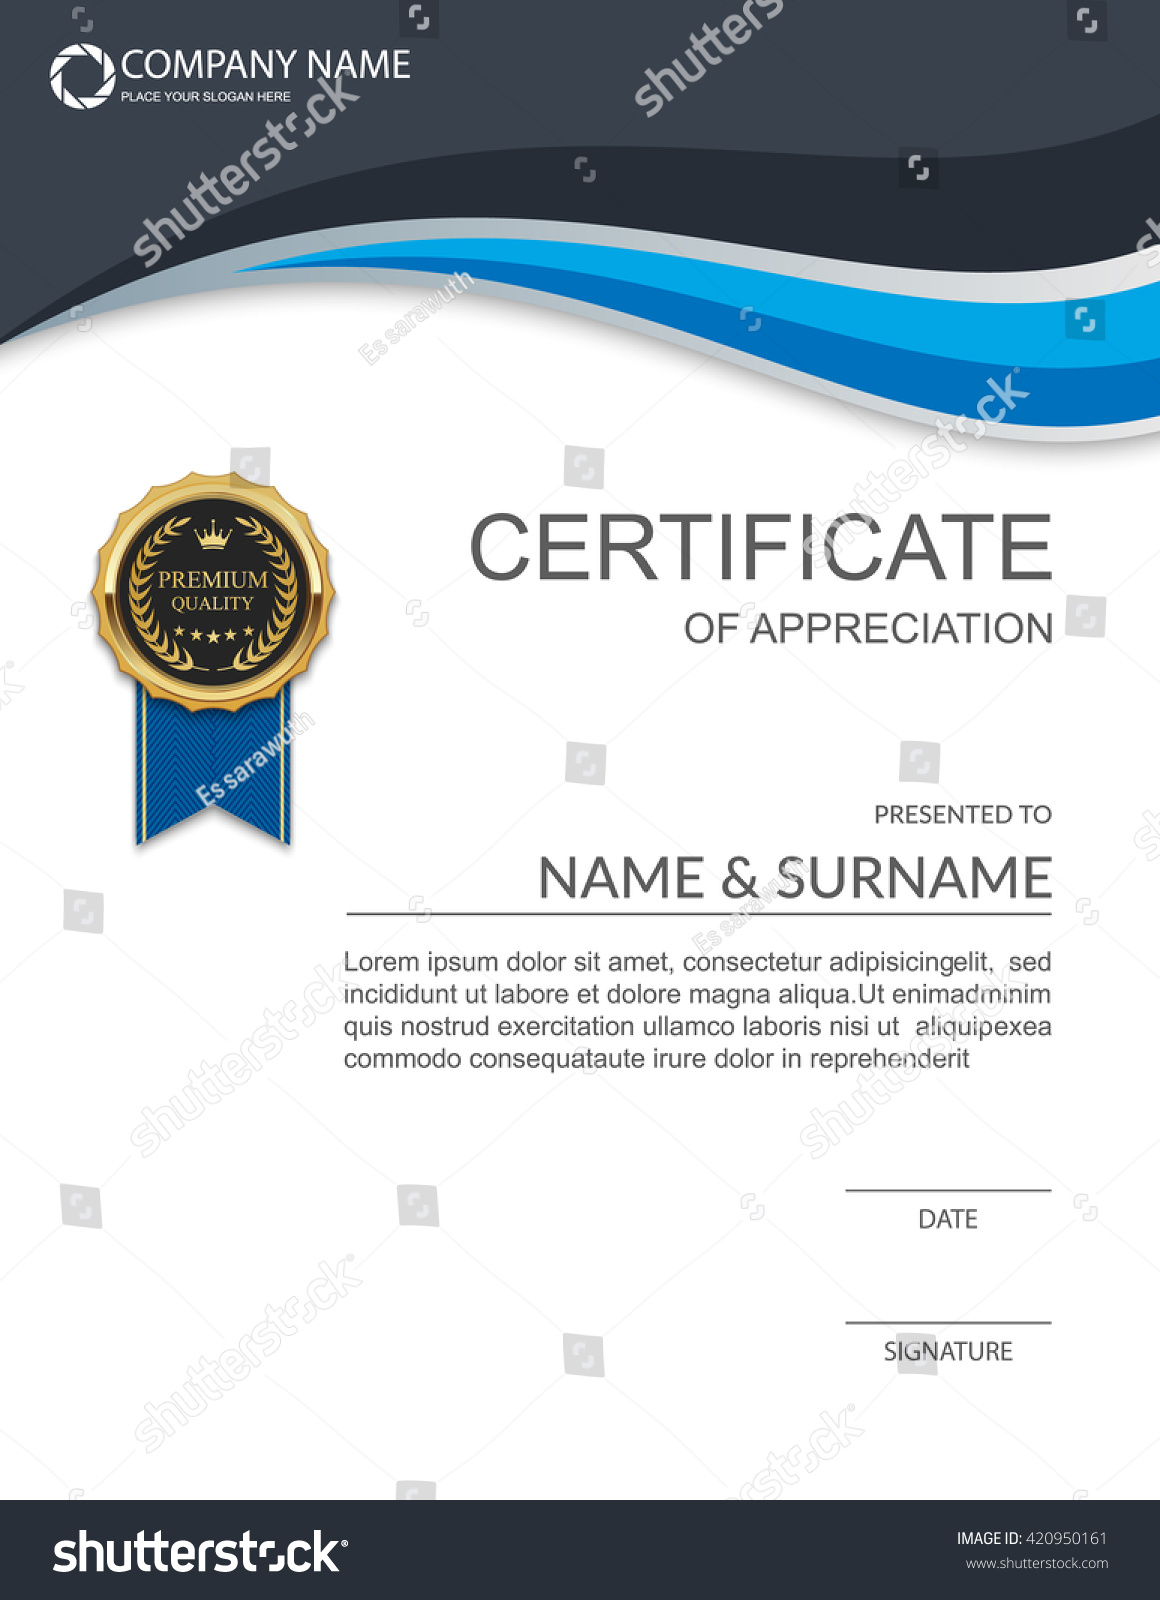 Share Certificates Template